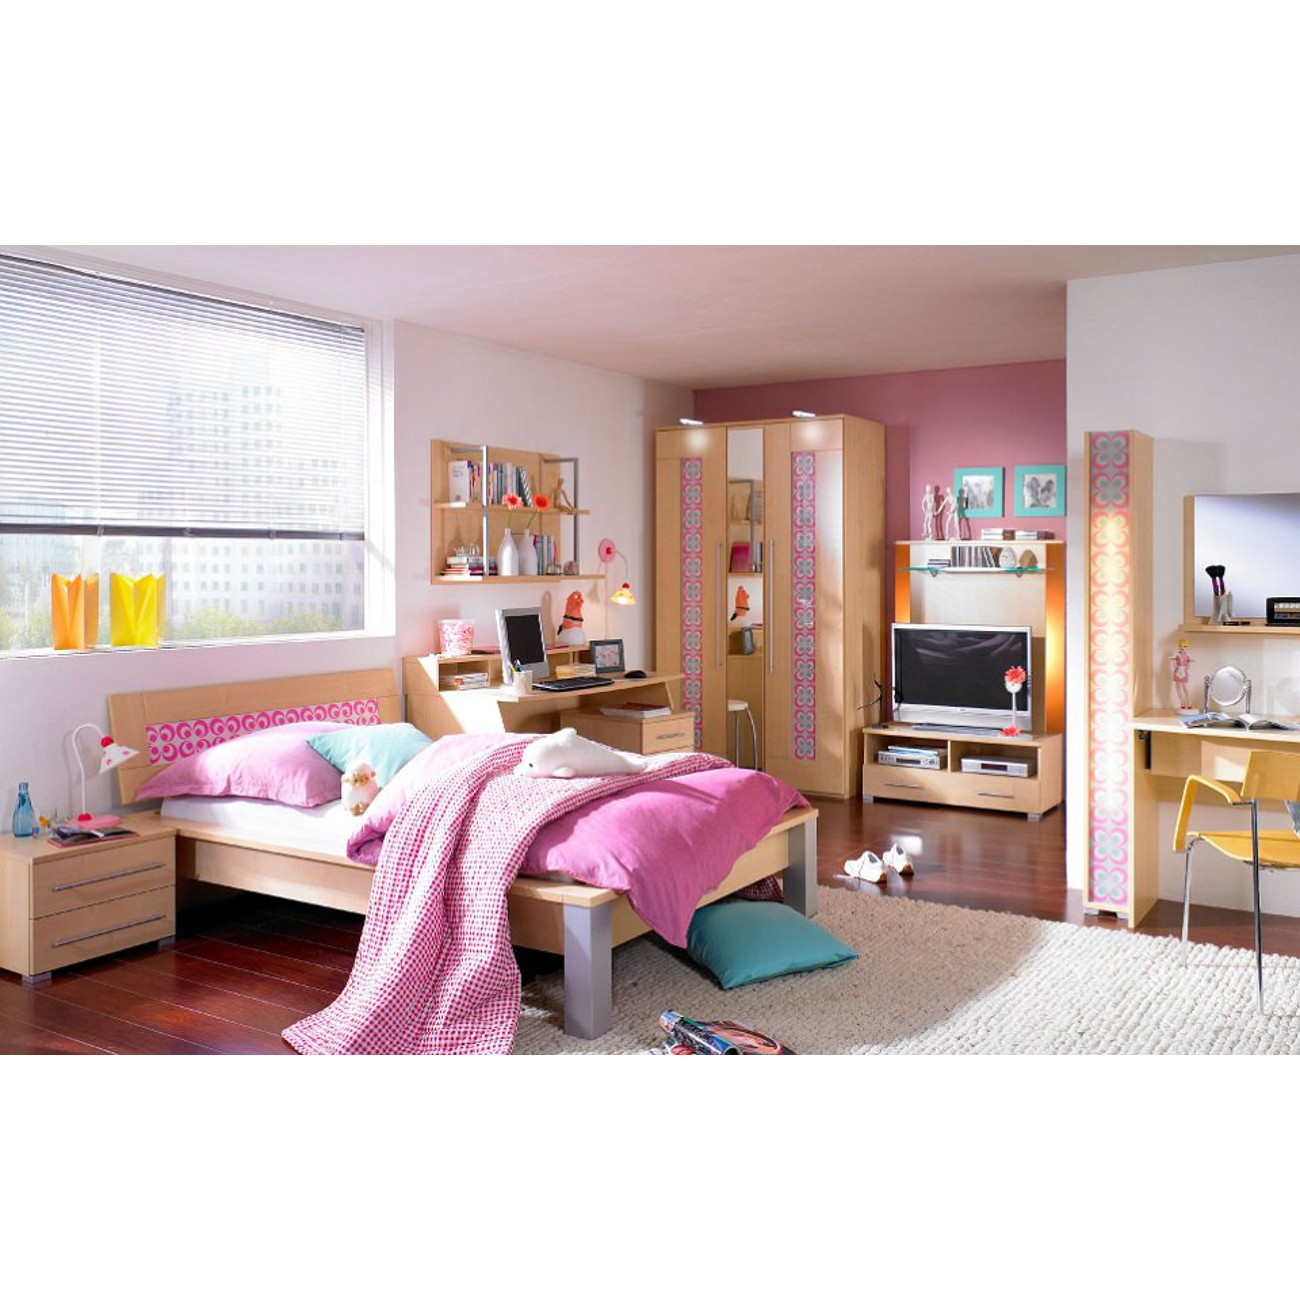 sch ne wand leseleuchte f rs kinderzimmer mit flexarm prinzessin 344. Black Bedroom Furniture Sets. Home Design Ideas